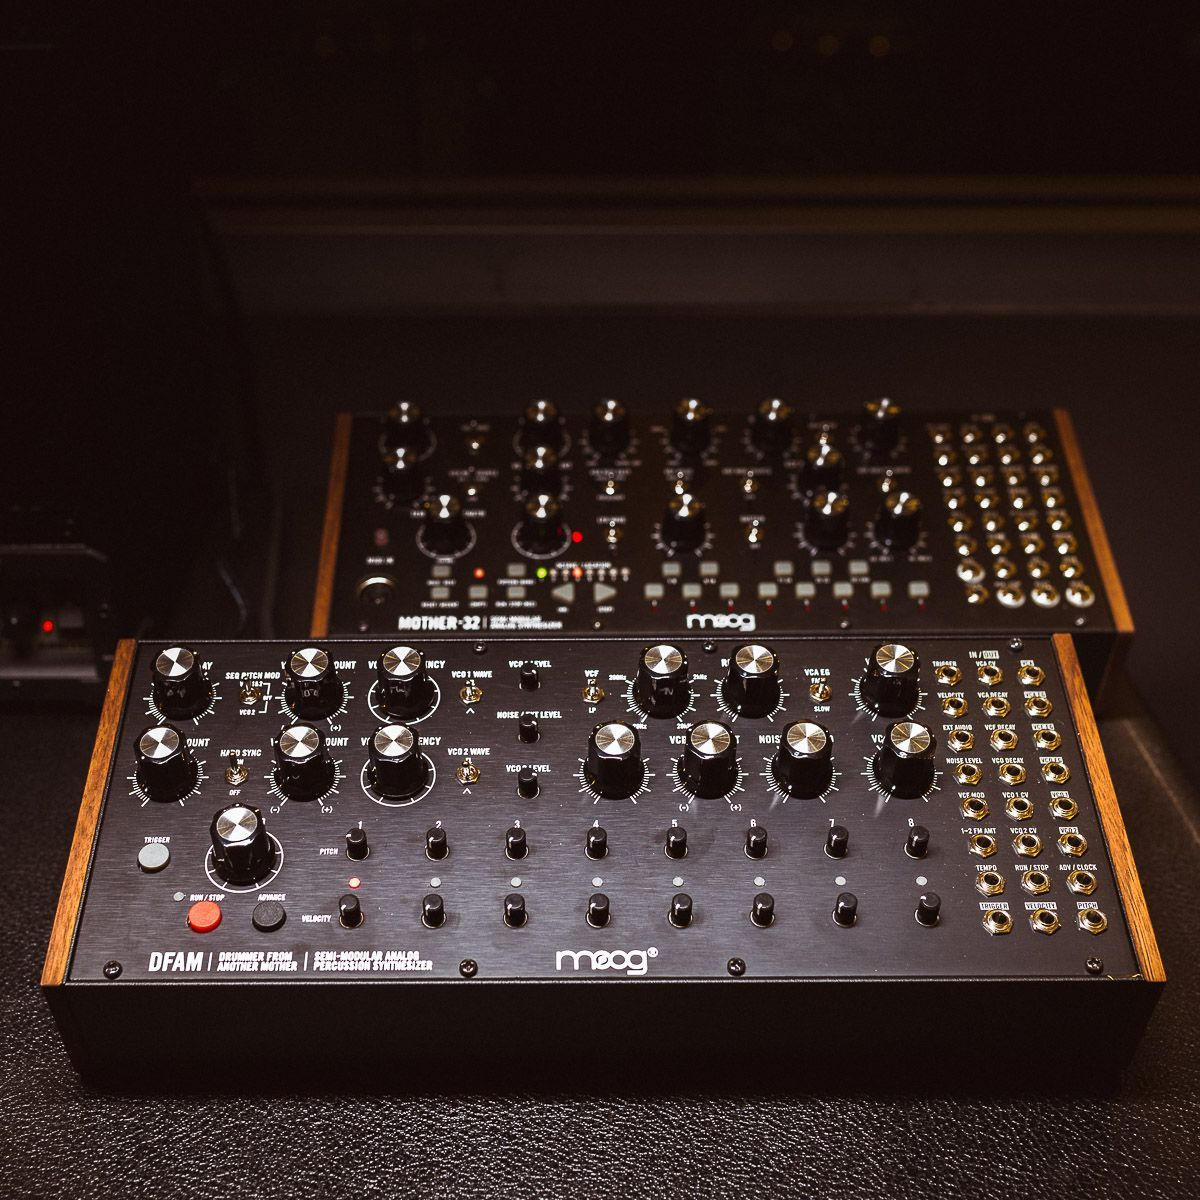 Moog DFAM Analog Percussion Synthesizer (With images ...